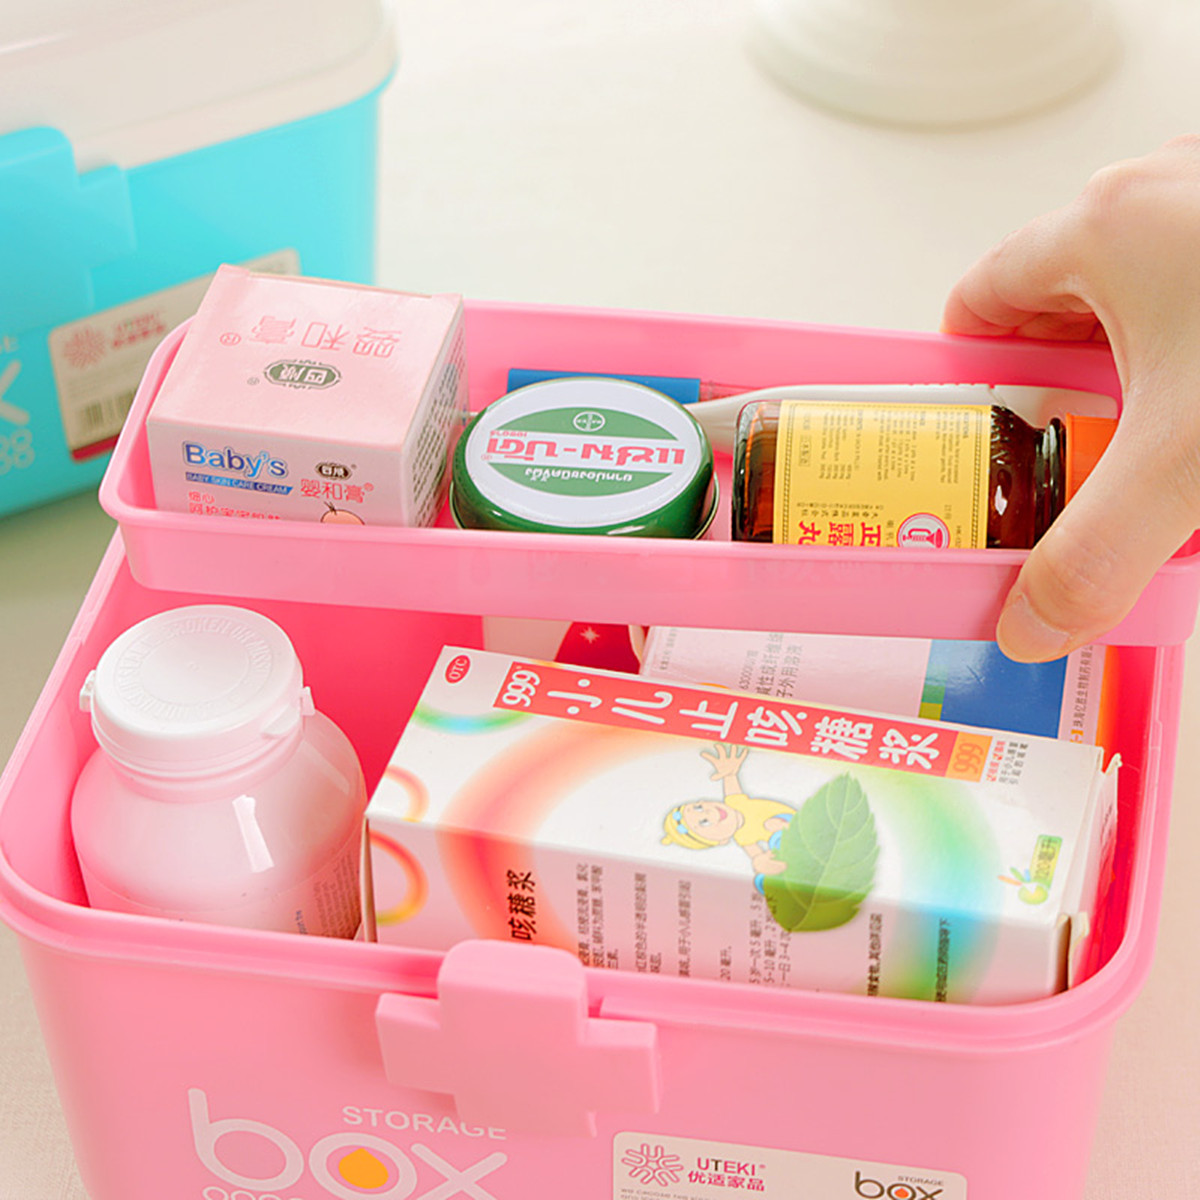 2 Layers Plastic First Aid Kit Case Storage Box for Pill Medicine Drug Bottle Accessories